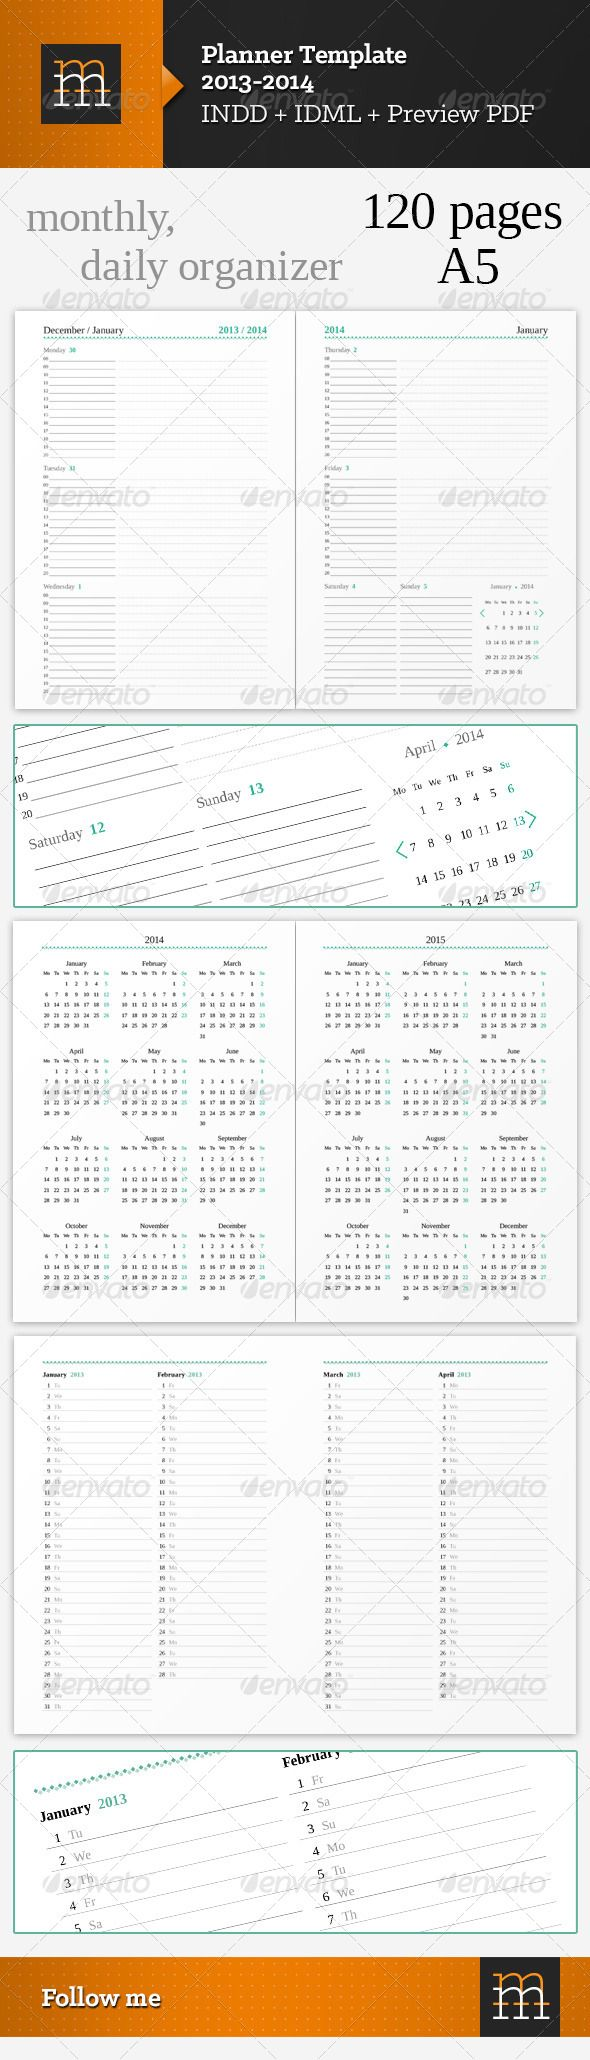 Fine 100 Free Resume Builder Tall 1099 Template Excel Round 15 Year Old Resume Sample 2 Page Resume Design Young 2014 Calendar Template Monthly Black2015 Calendar Planner Template 25  Best Ideas About October 2014 Calendar On Pinterest | February ..